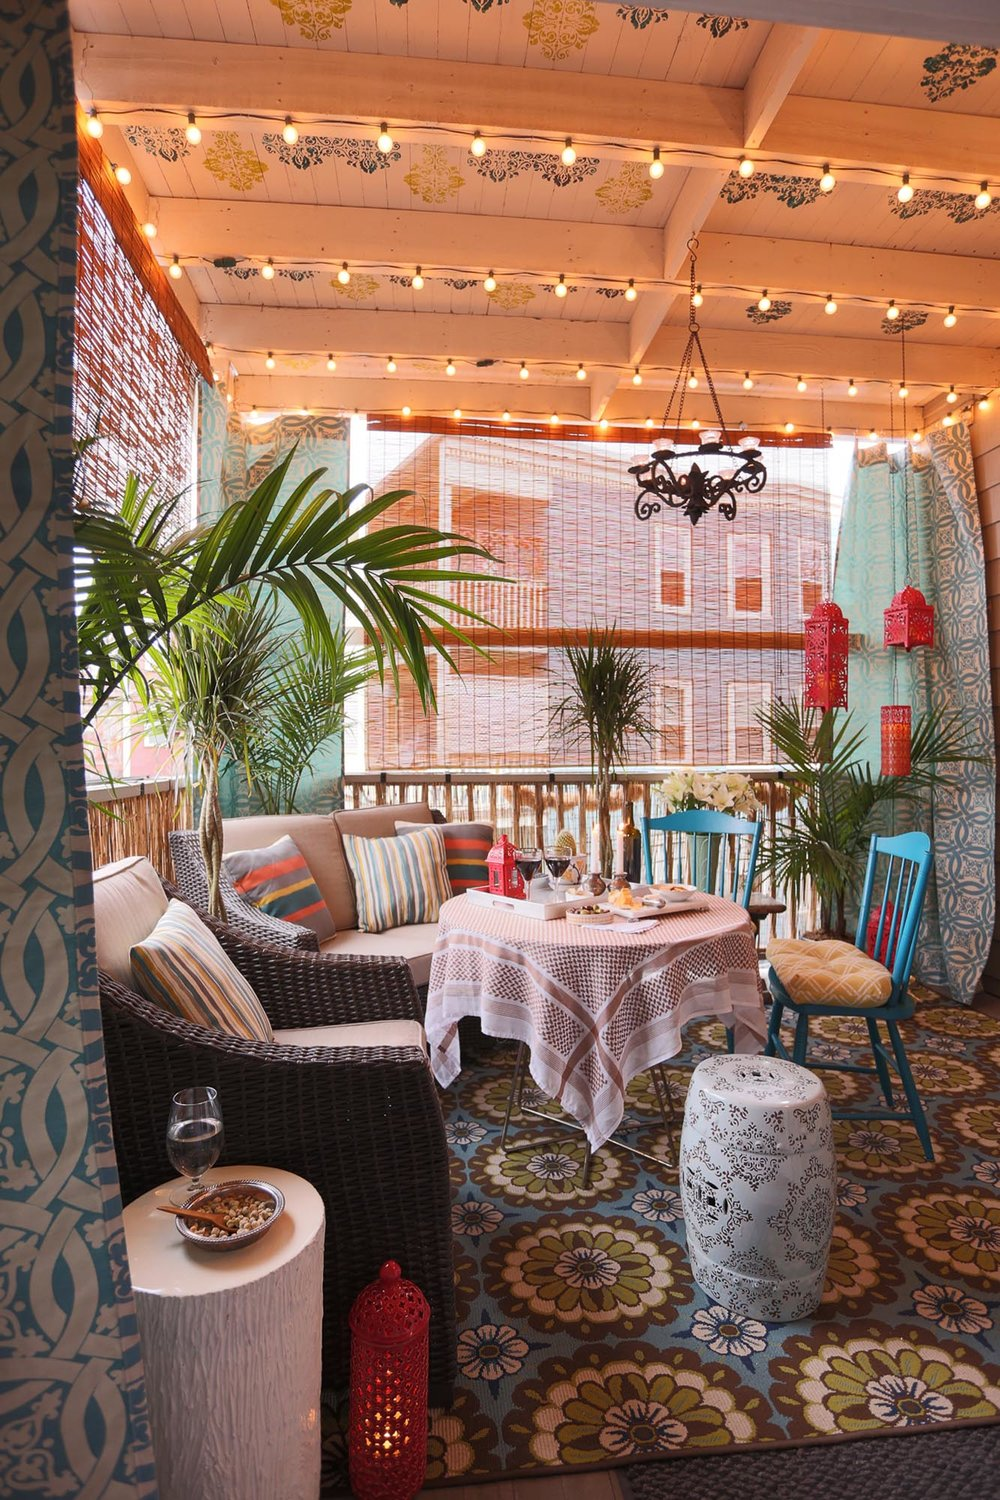 Balcony with floral carpet floor and stylish ceiling with lights.